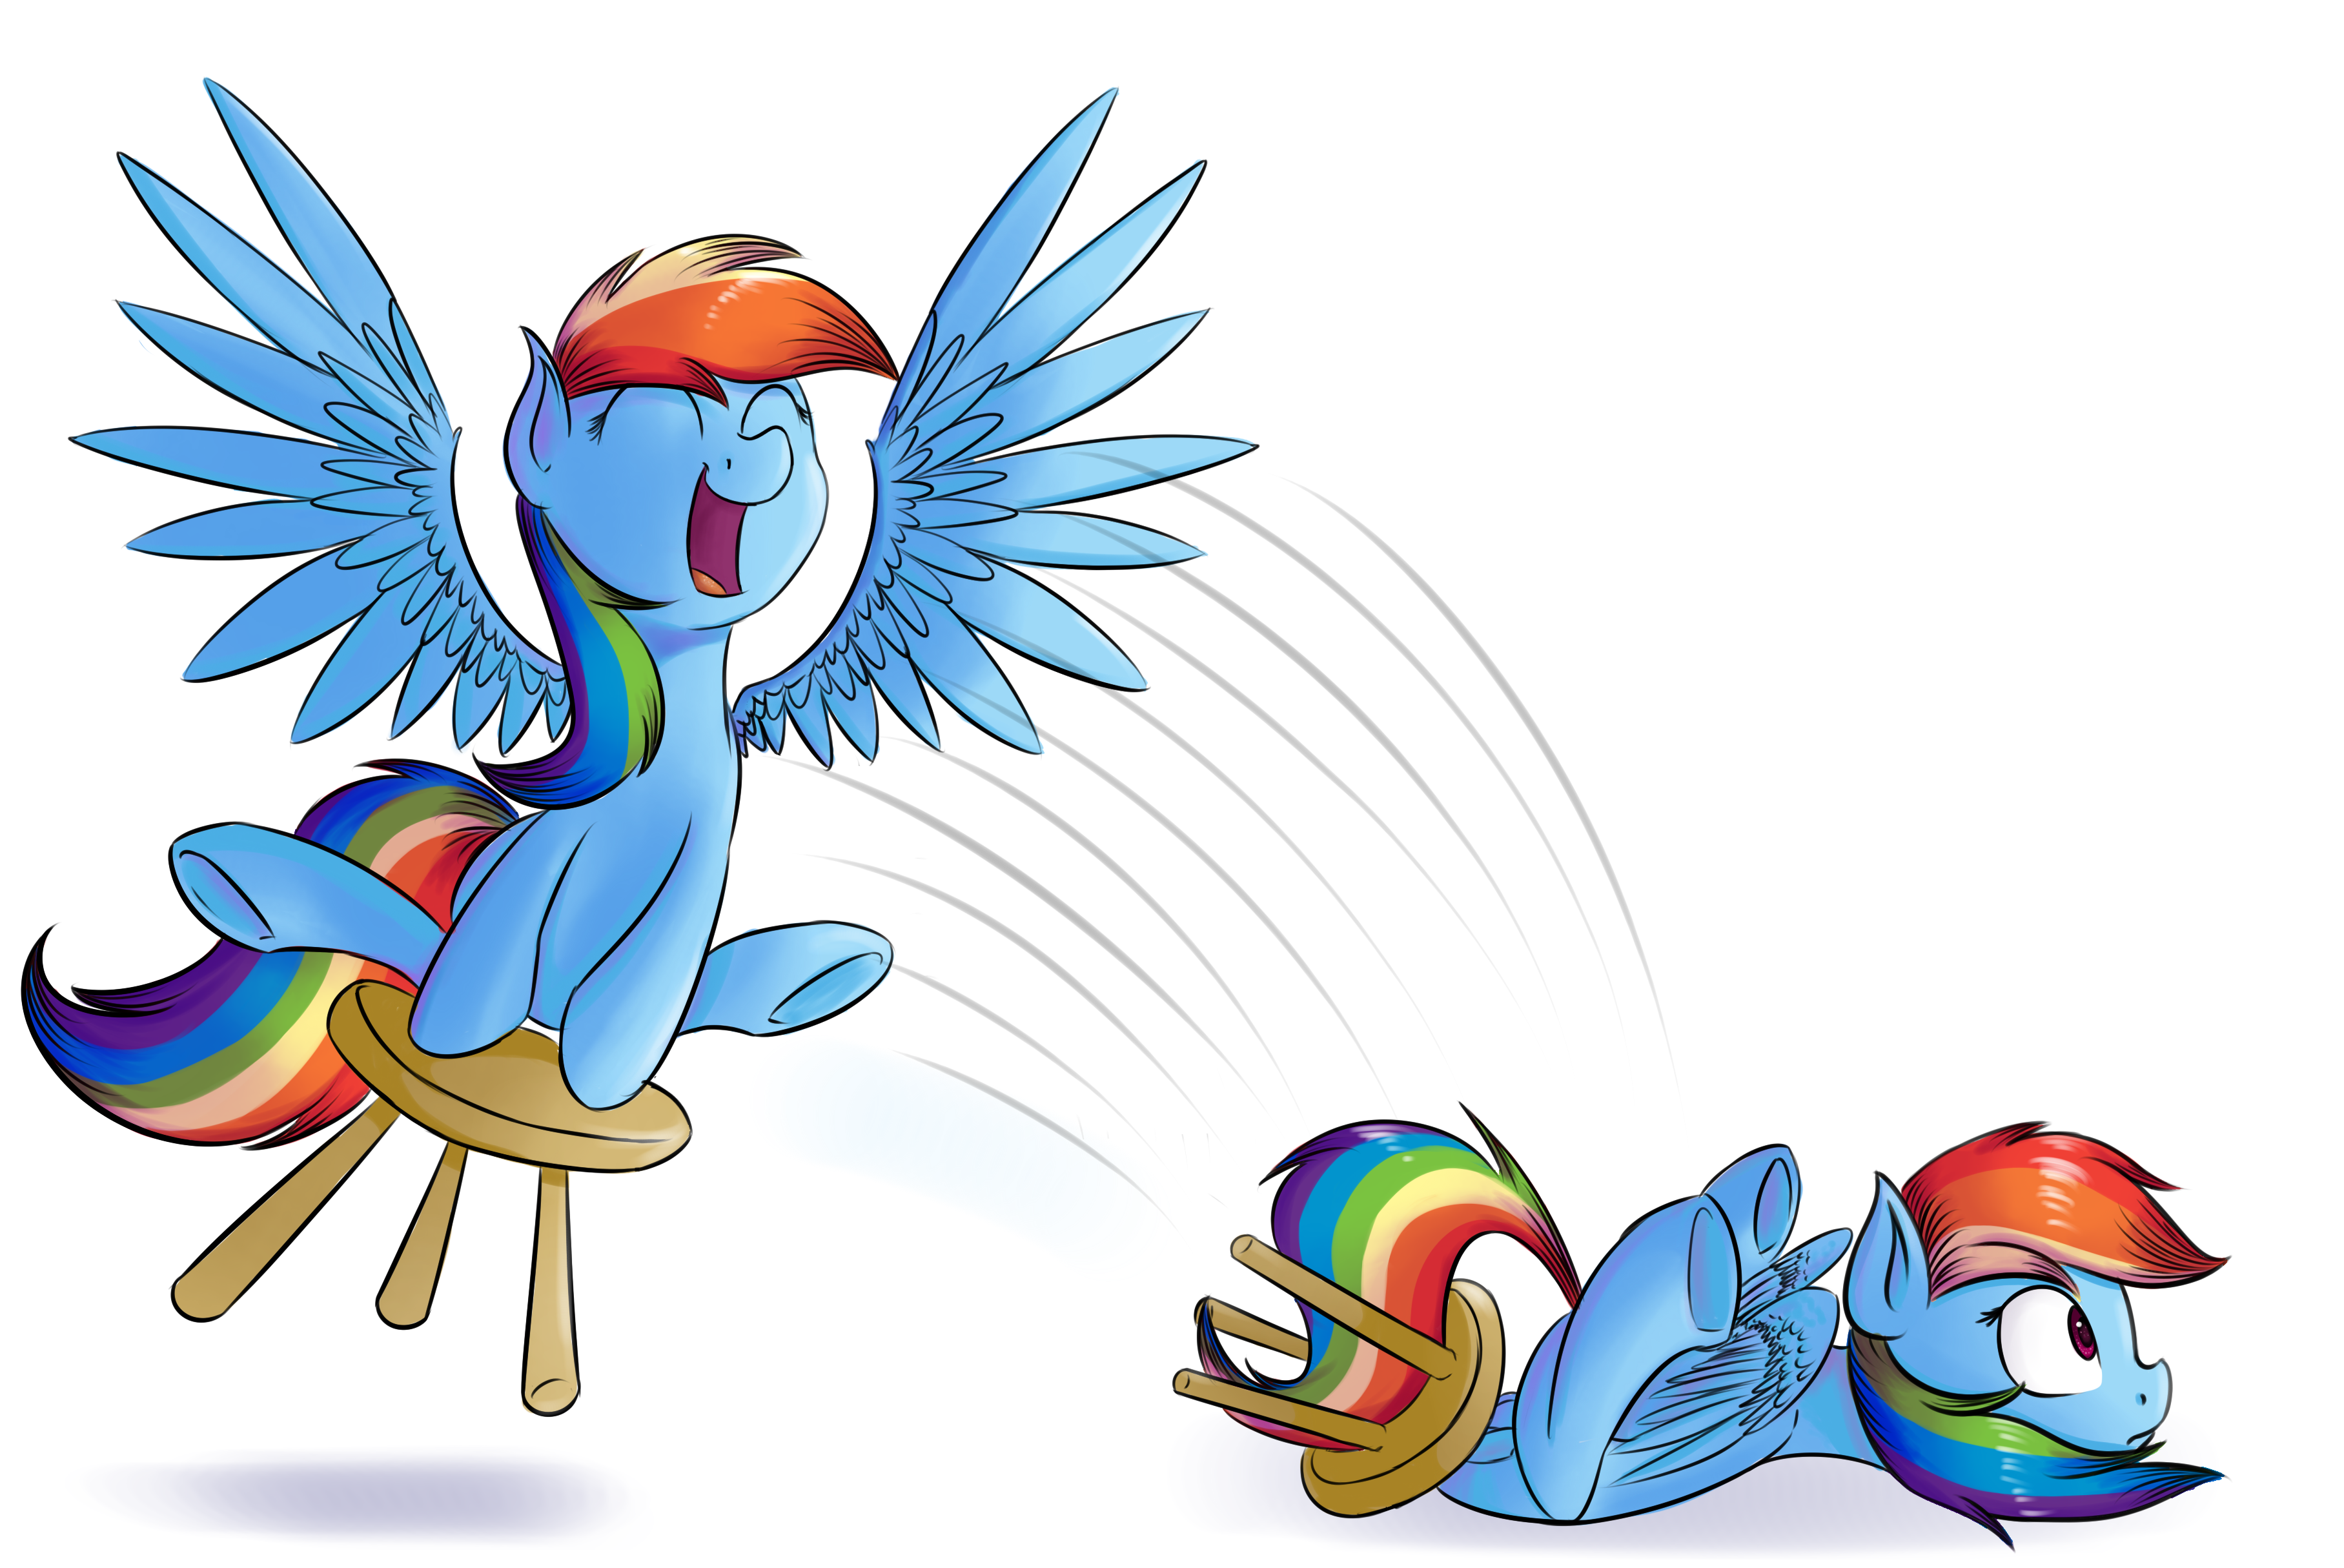 http://derpicdn.net/img/view/2014/4/6/593986__safe_solo_rainbow+dash_testing+testing+1-dash-2-dash-3_spoiler-colon-s04e21_dashabetes_chair_stool_artist-colon-crazypon3_stooldash.png